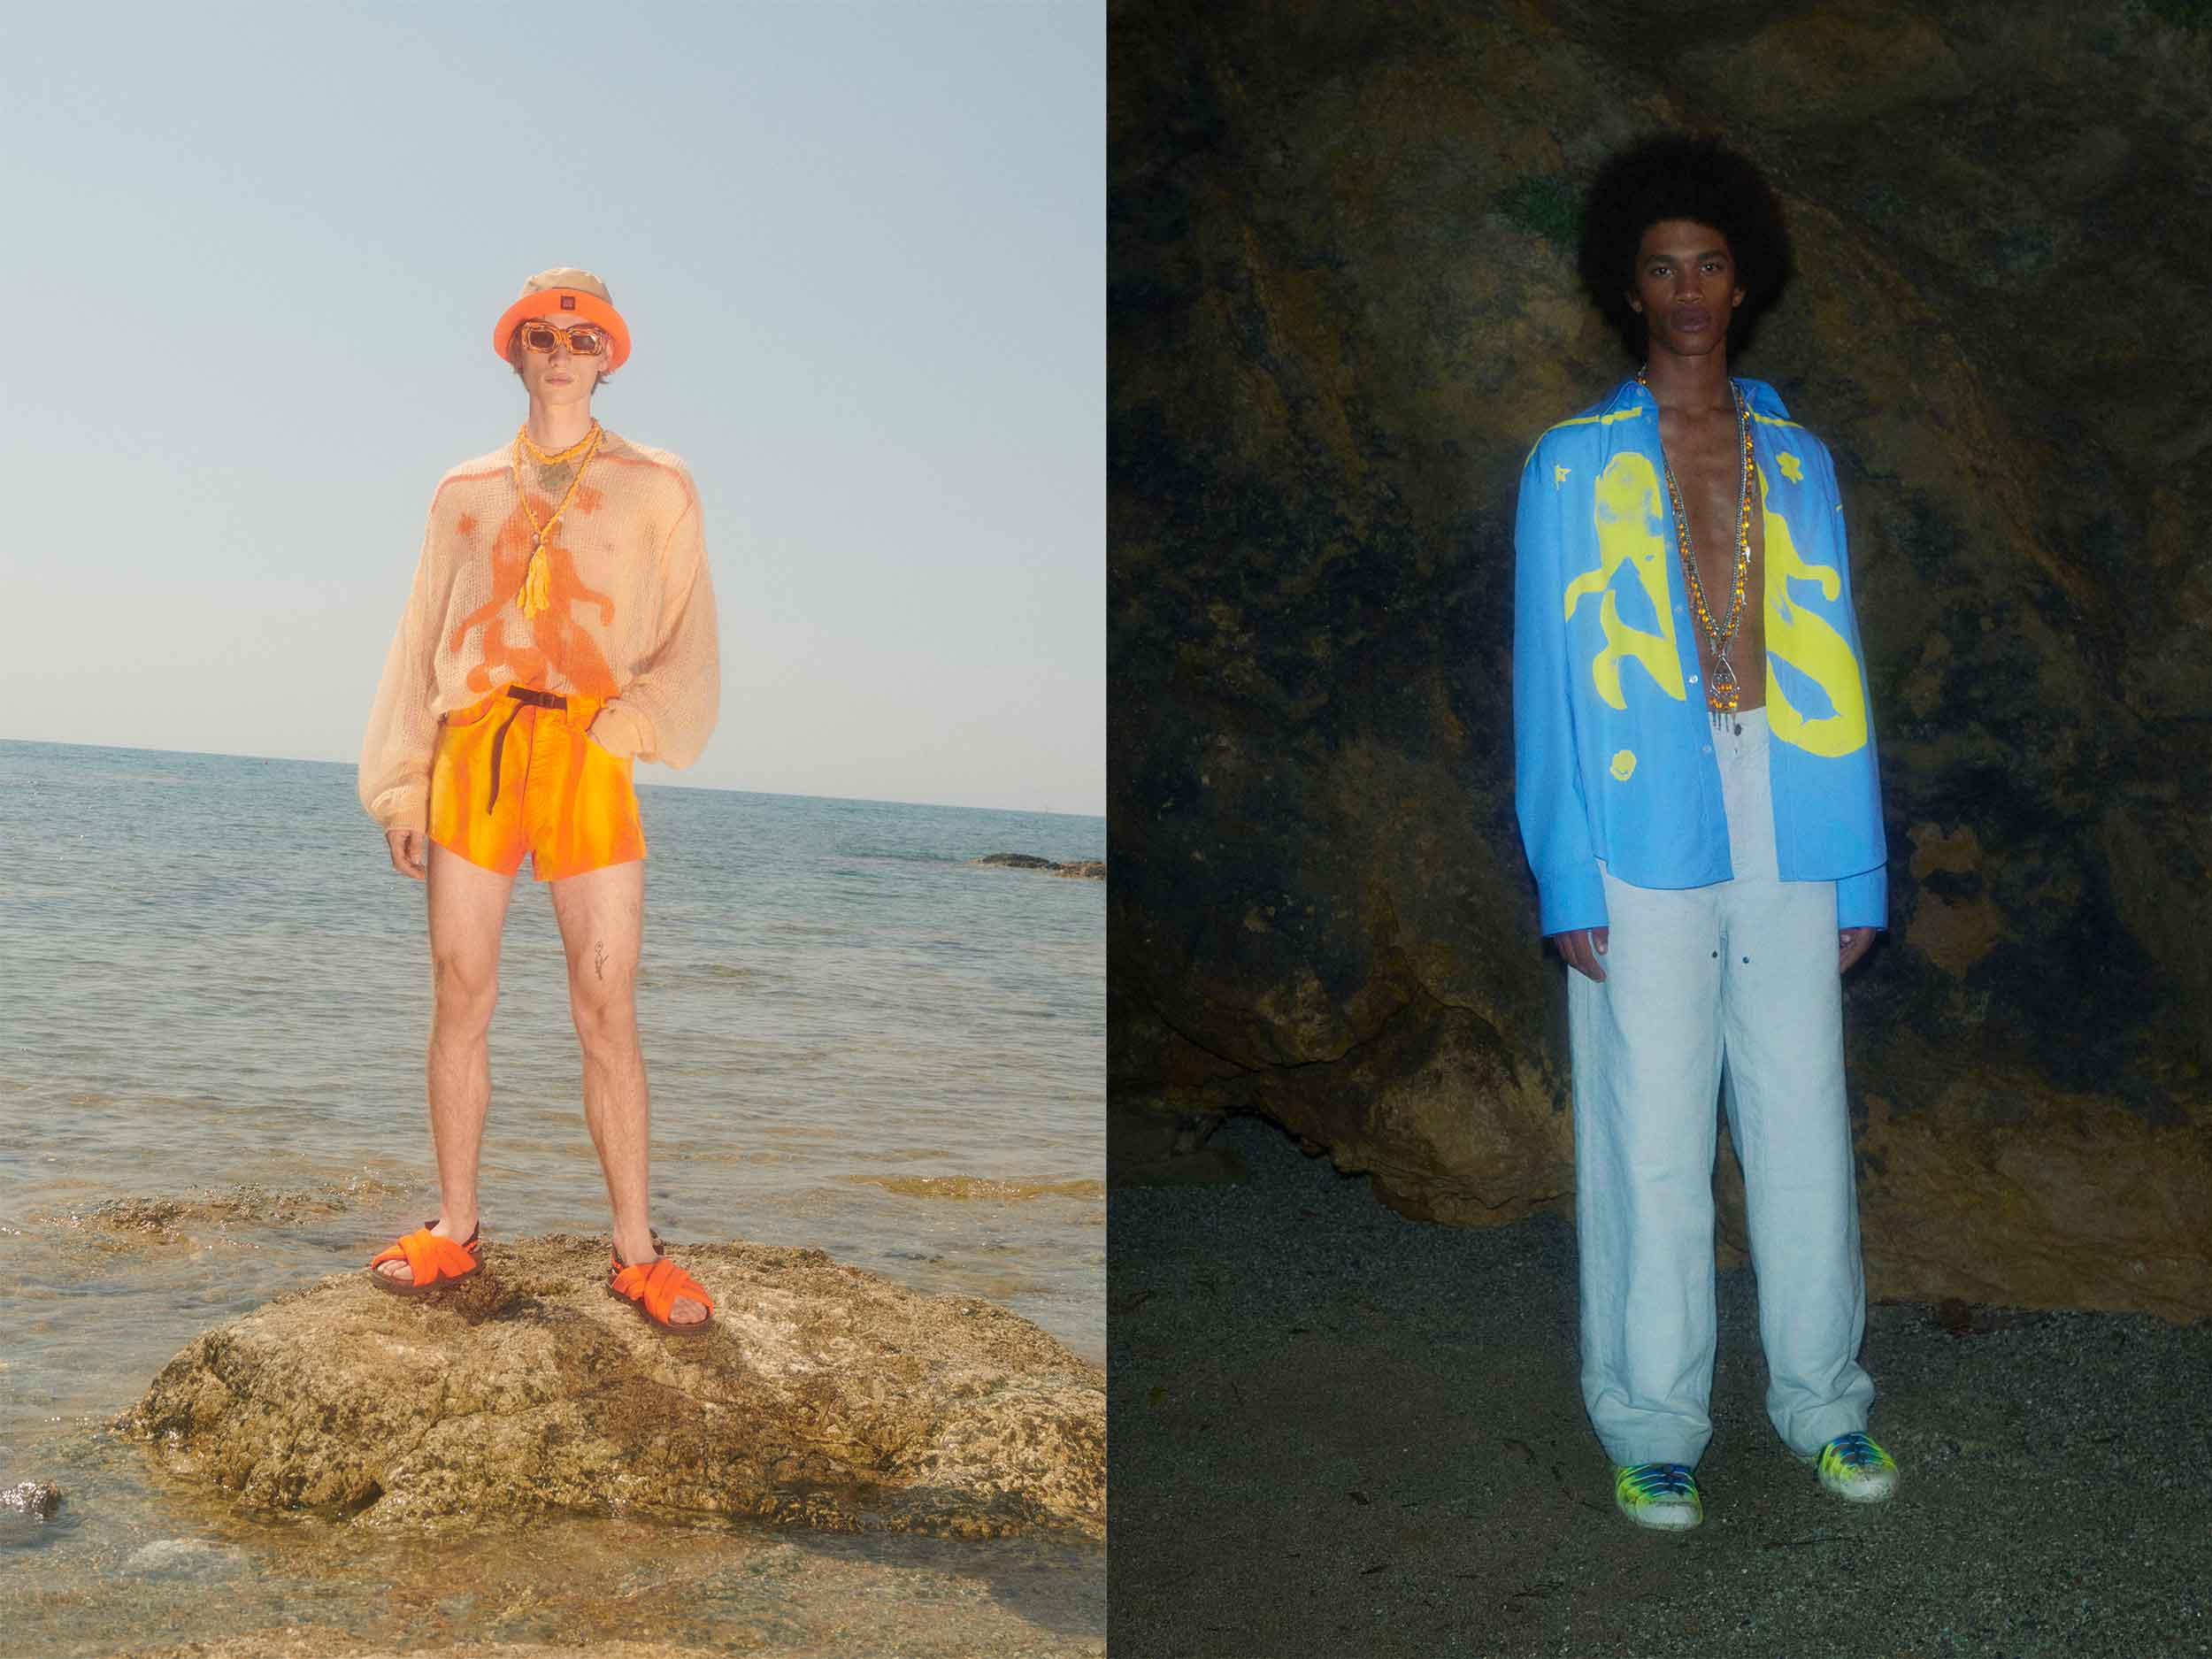 MSGM brings men's streetwear to the beach for Spring 2022